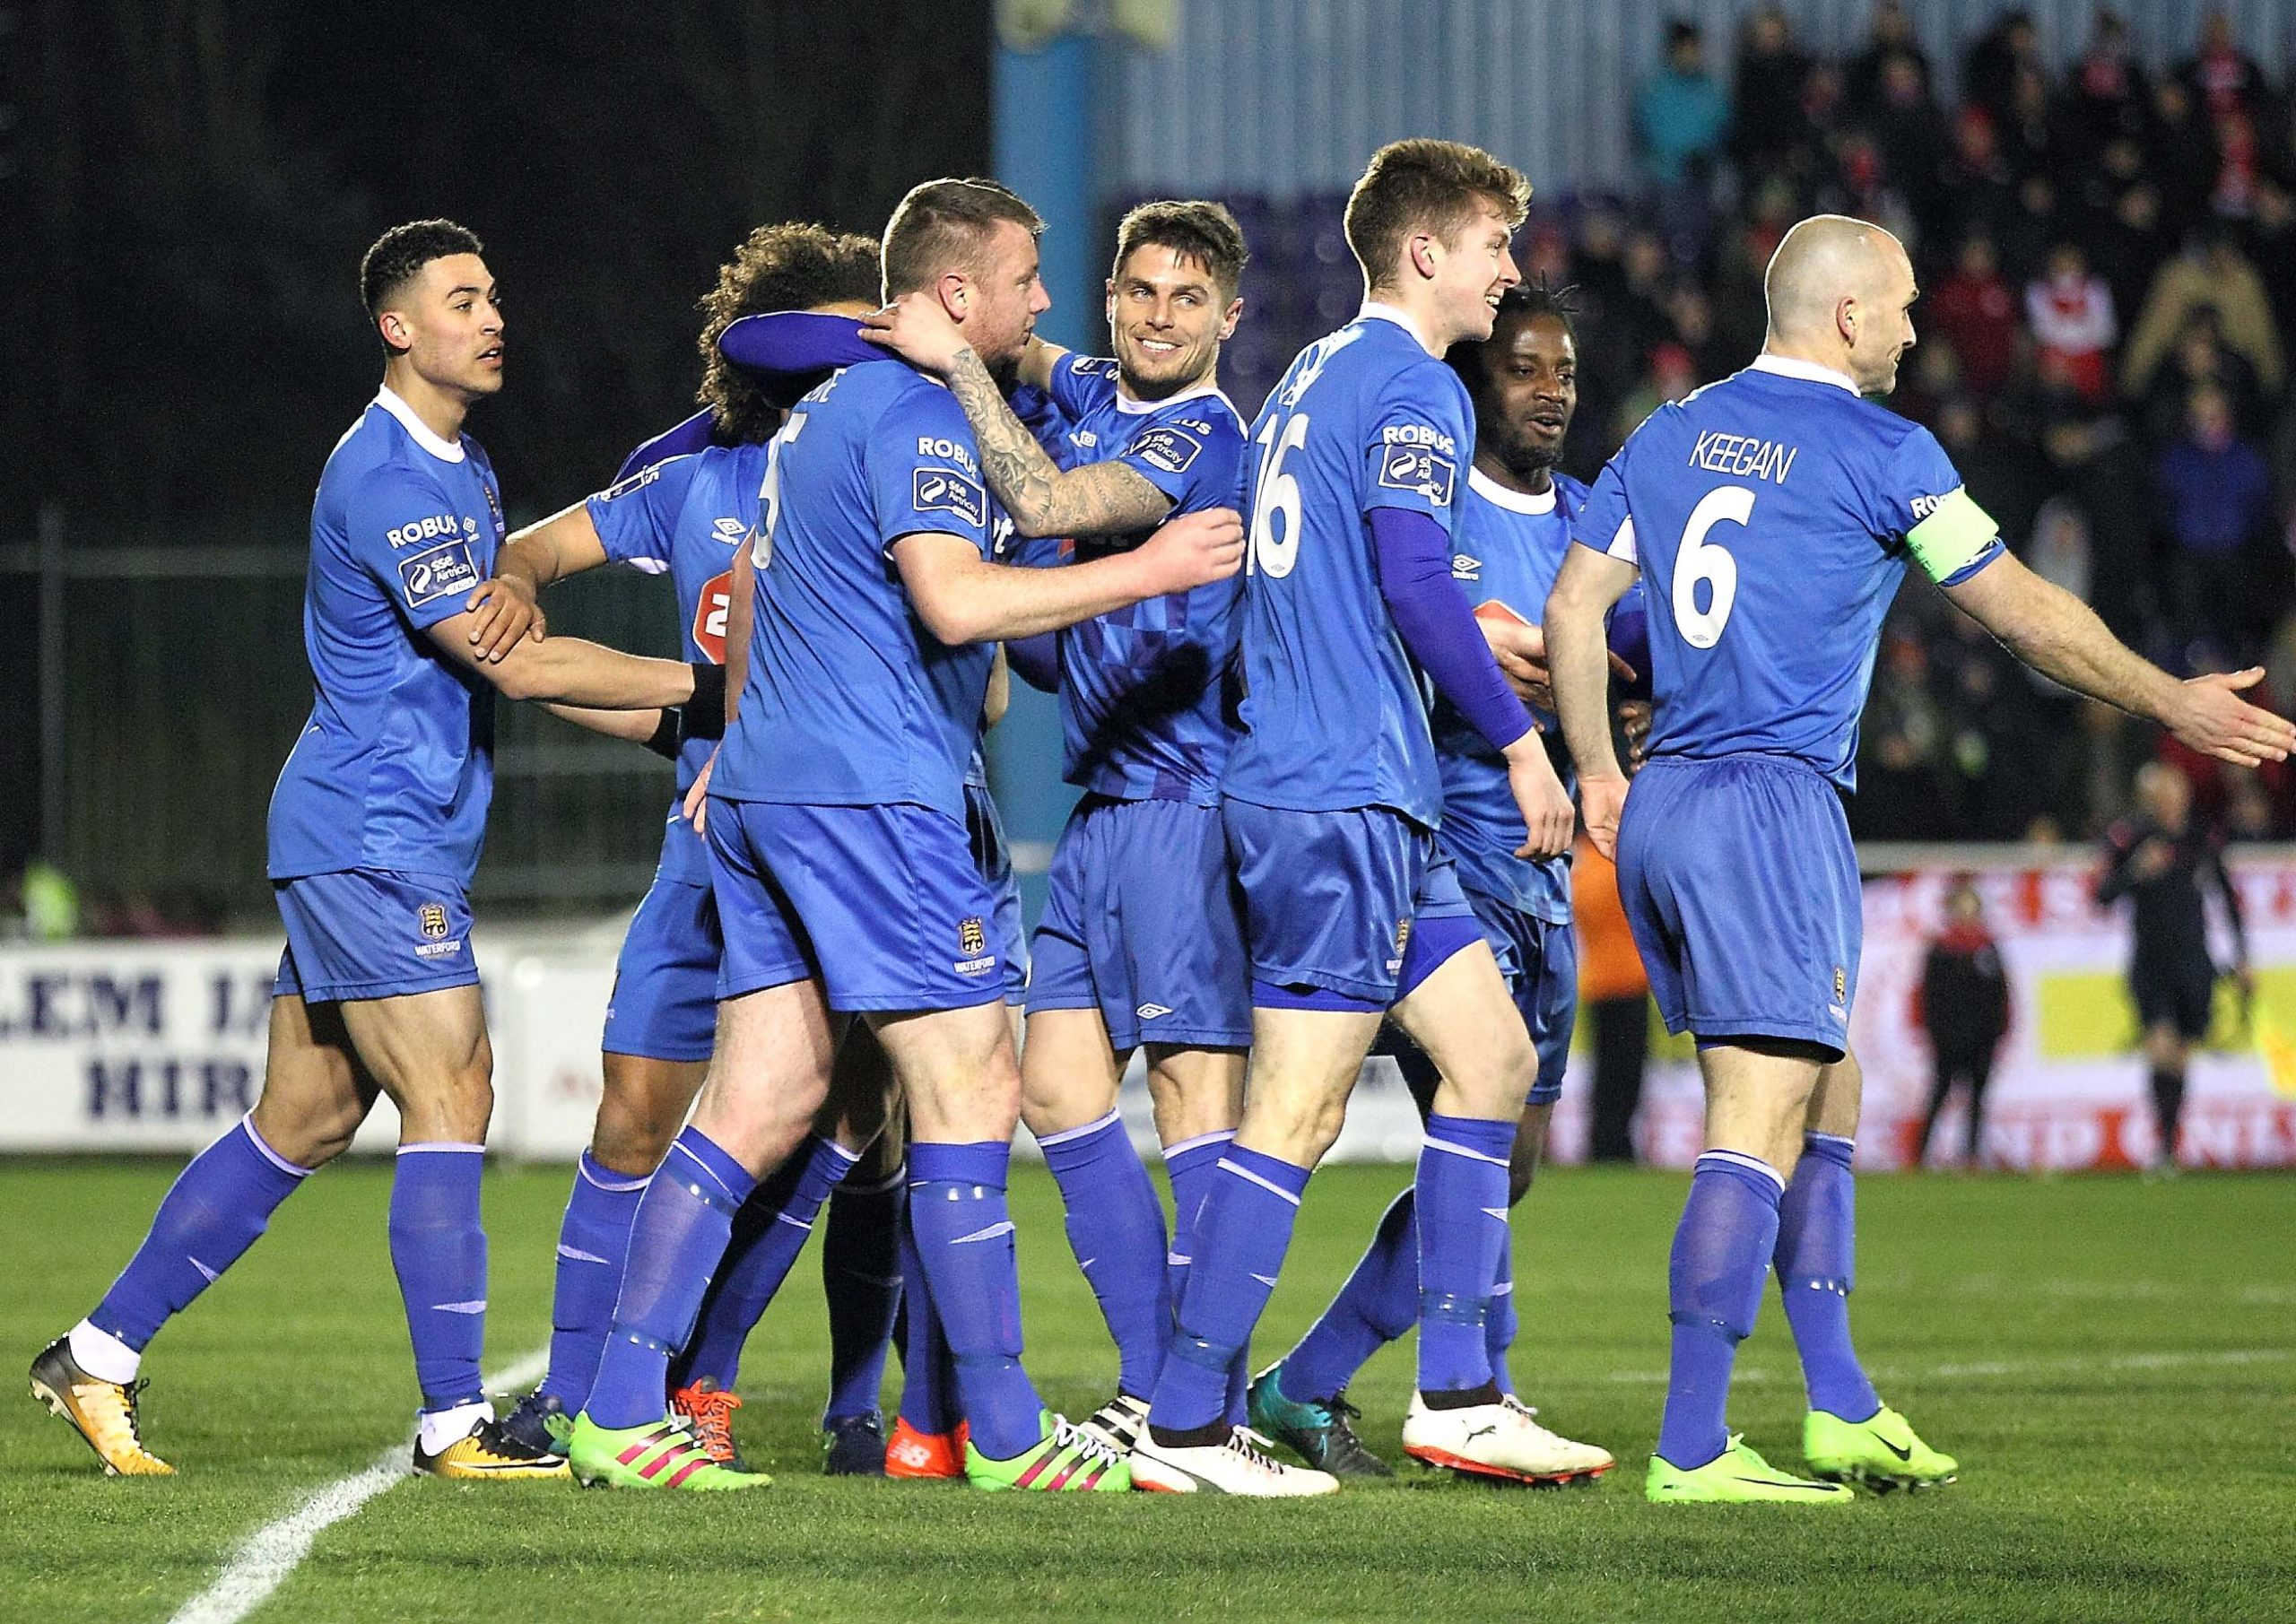 Blues welcome Dundalk to what's set to be a sell-out at the RSC in the Airtricity League Premier Division this evening